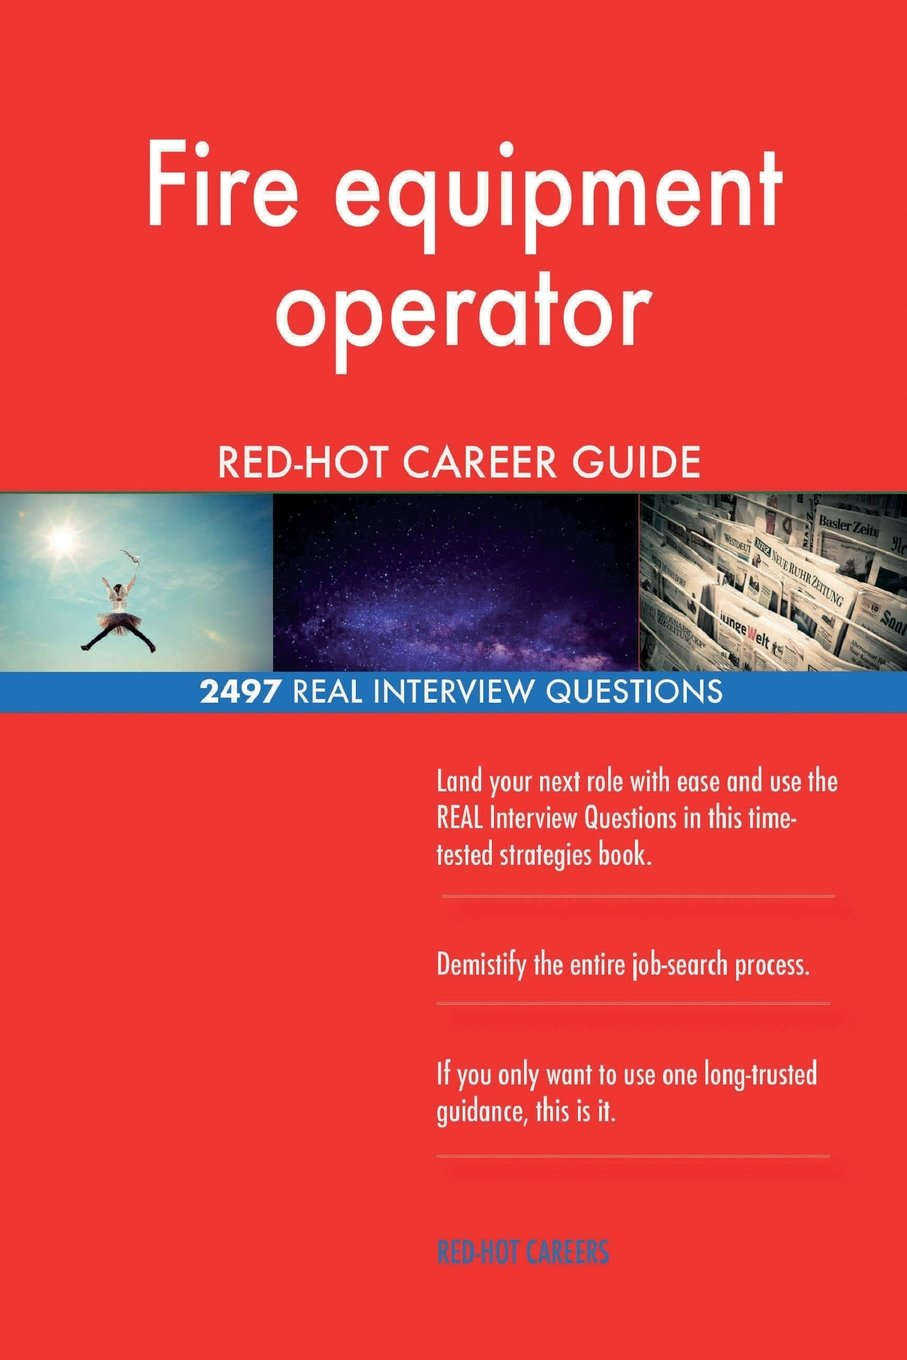 Download Fire equipment operator RED-HOT Career Guide; 2497 REAL Interview Questions pdf